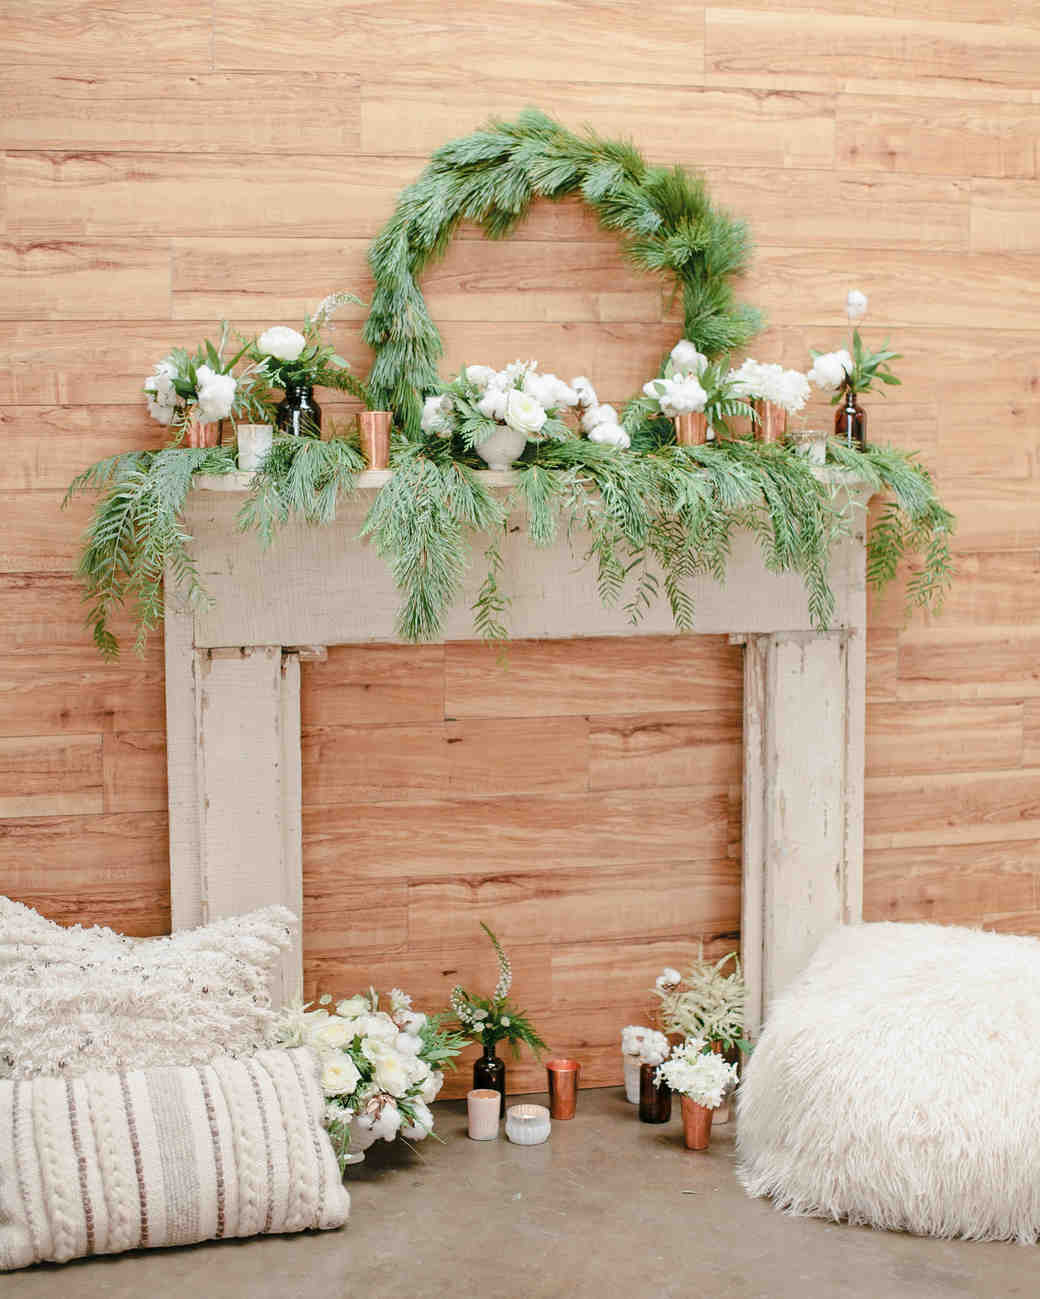 winter rehearsal dinner fire place with greenery mantel decor